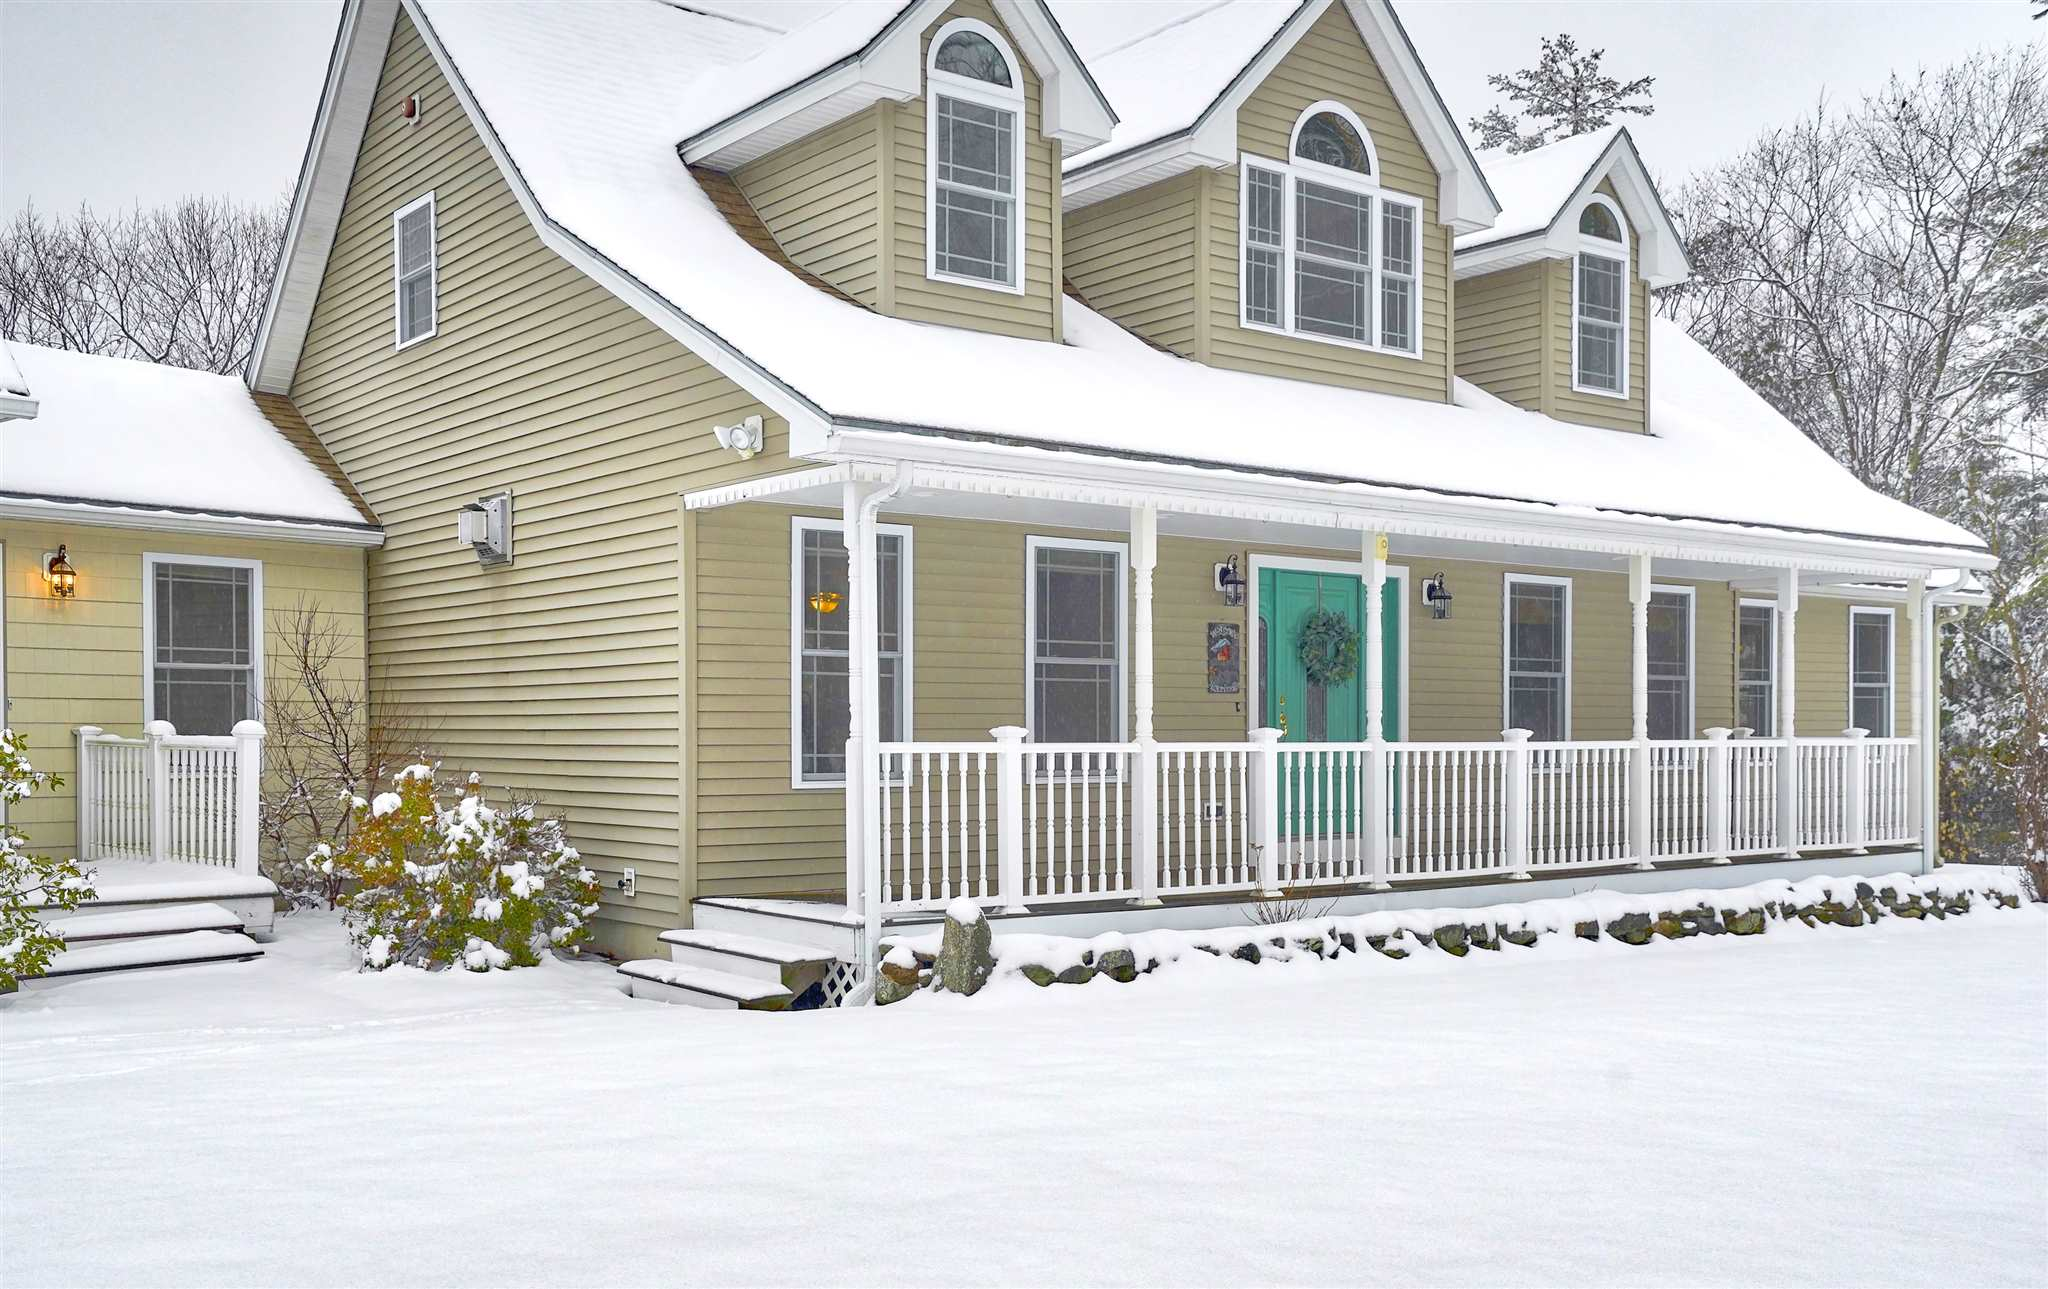 MLS 4793981: 7 Old New Boston Road, Mont Vernon NH